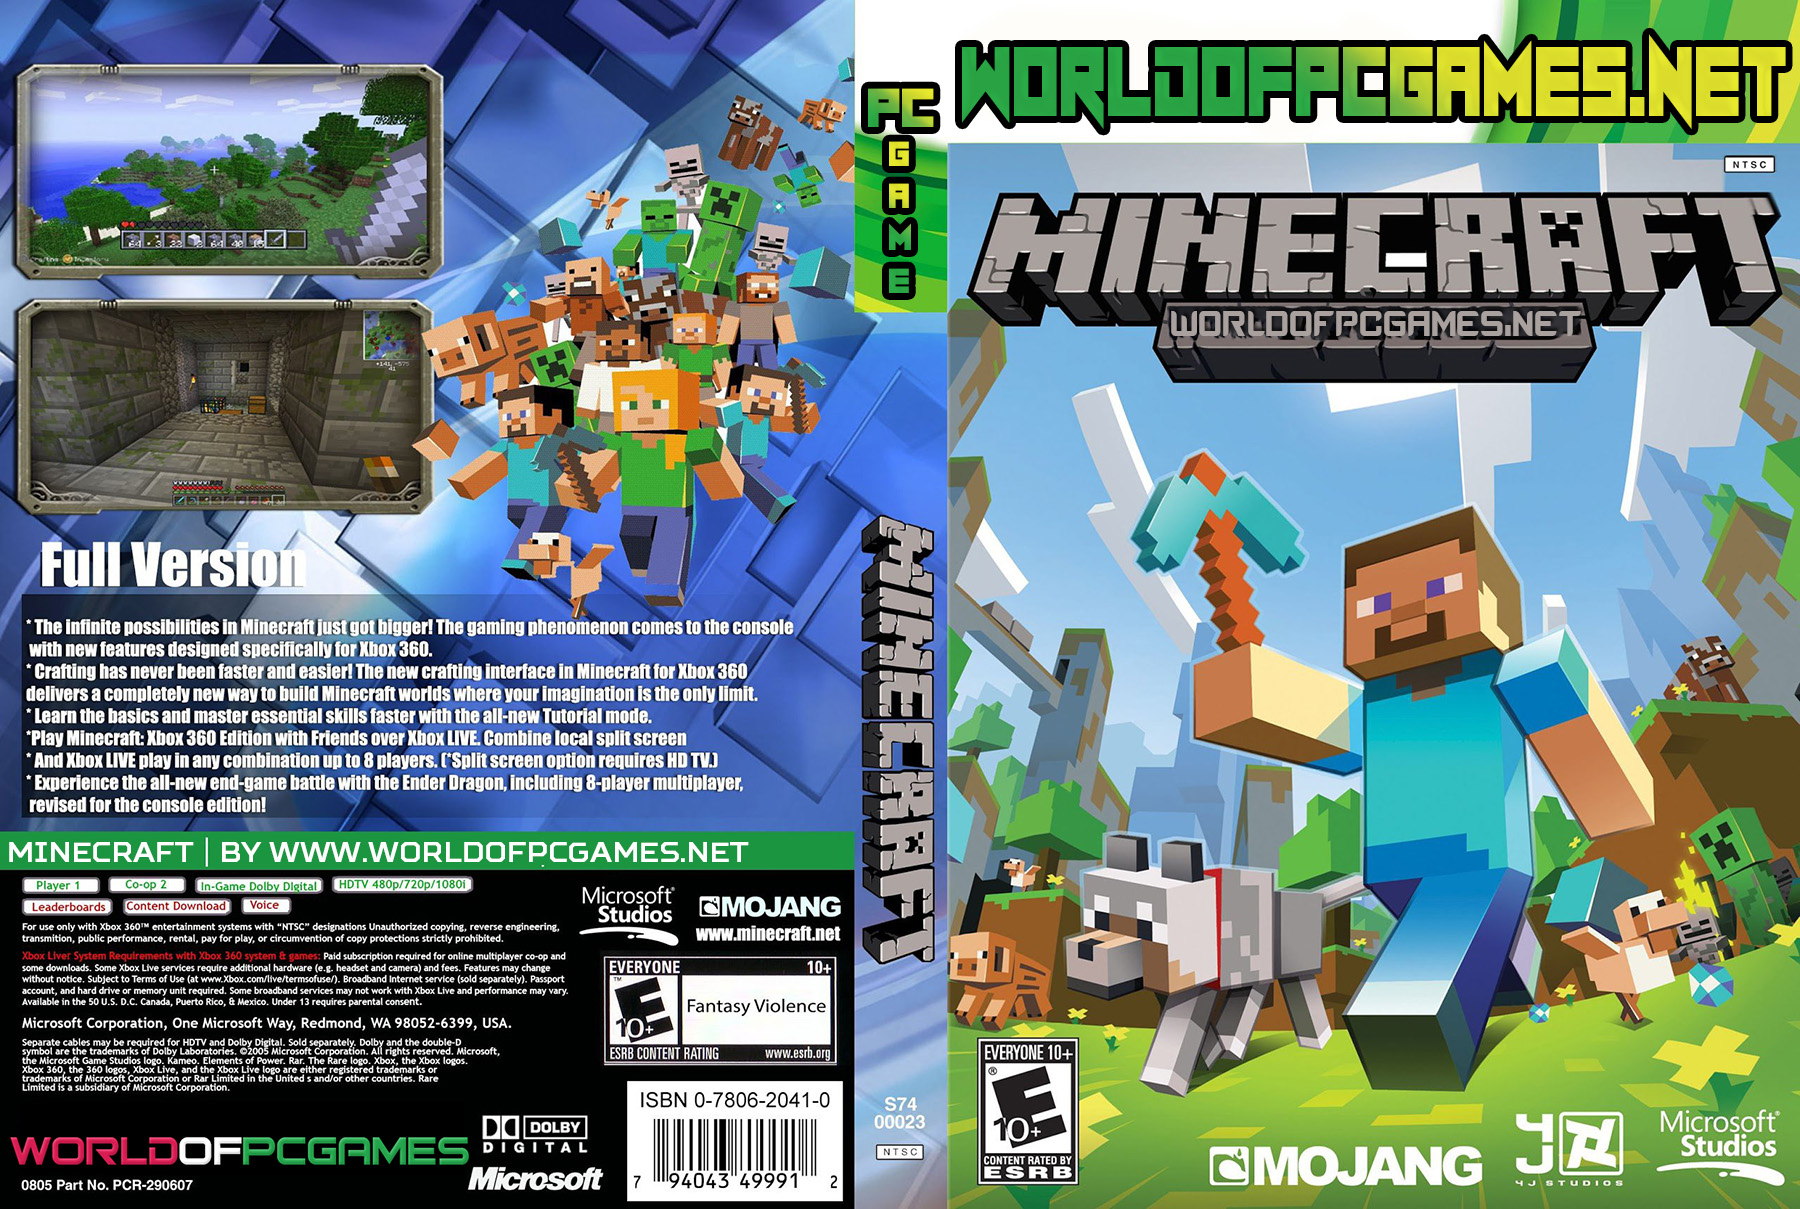 download minecraft latest full version free for pc